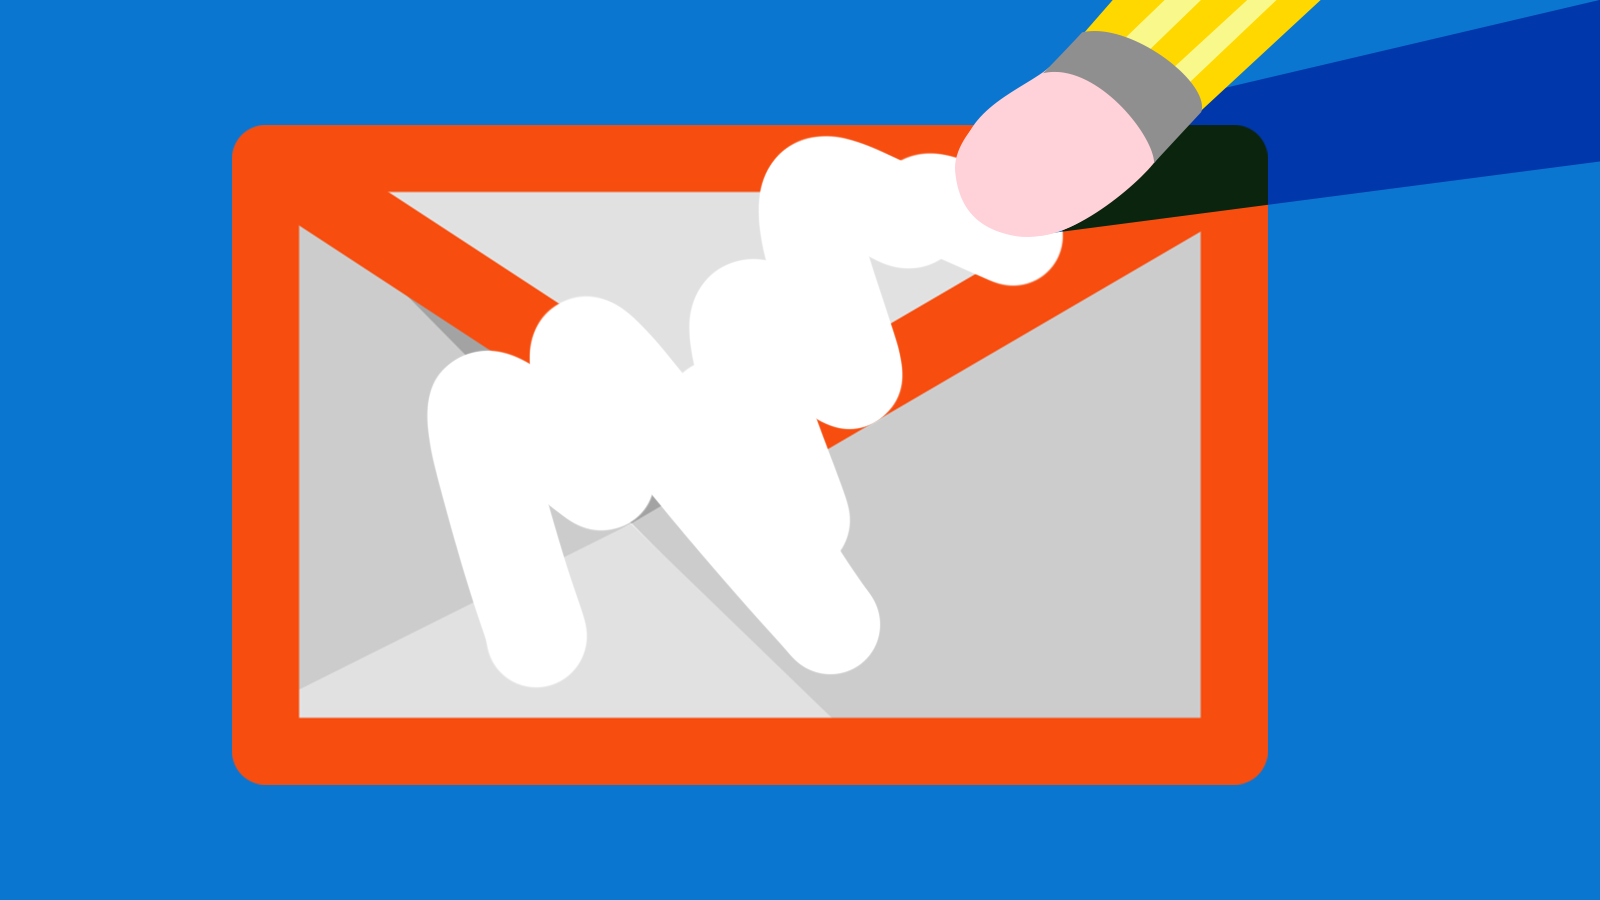 Email cover image